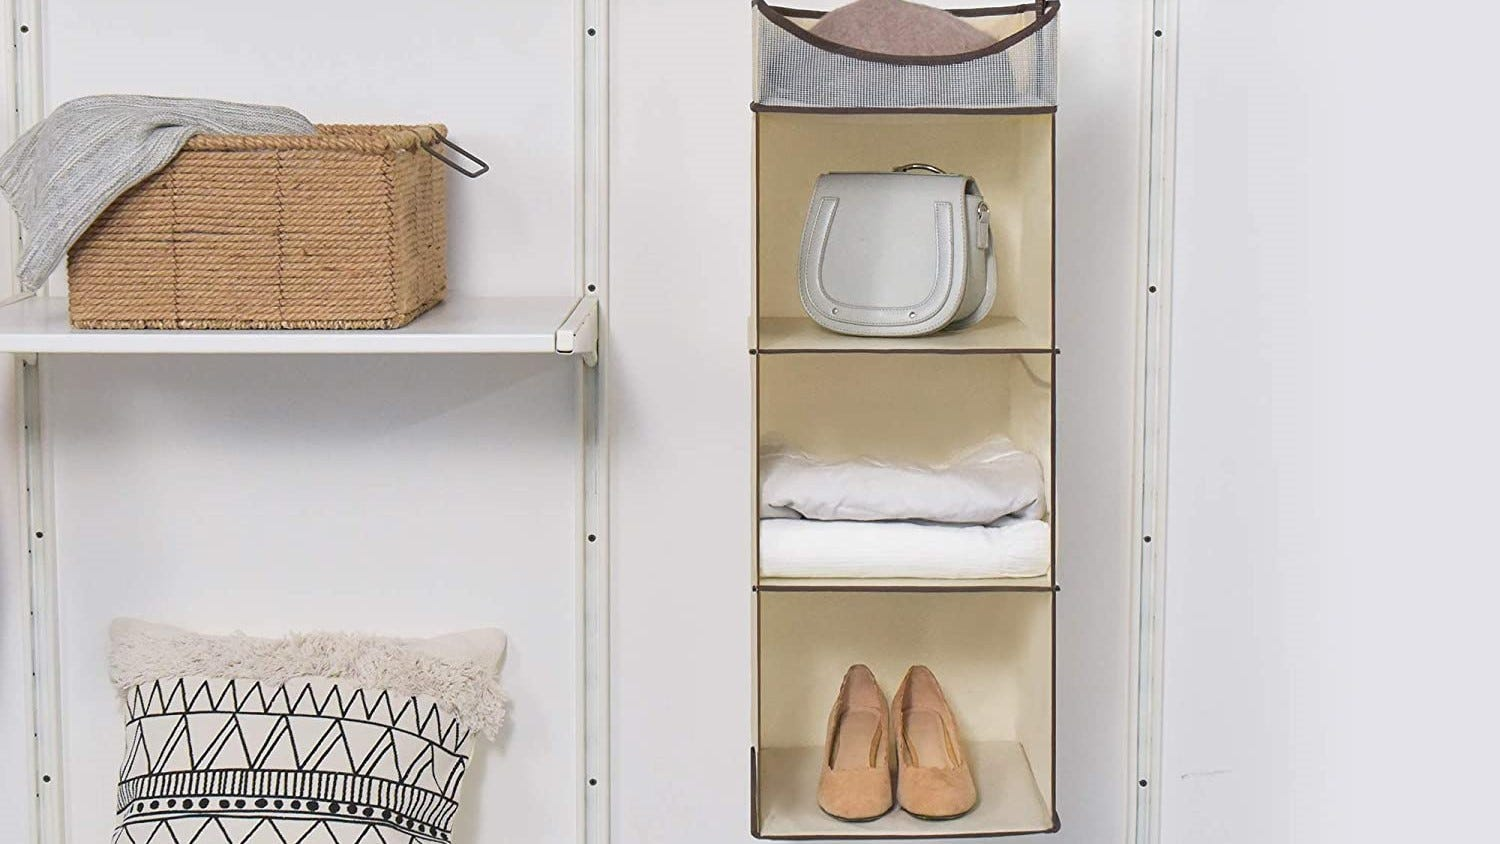 The StorageWorks hanging closet organizer with a bag, blanket, and pair of shoes stored on its shelves.